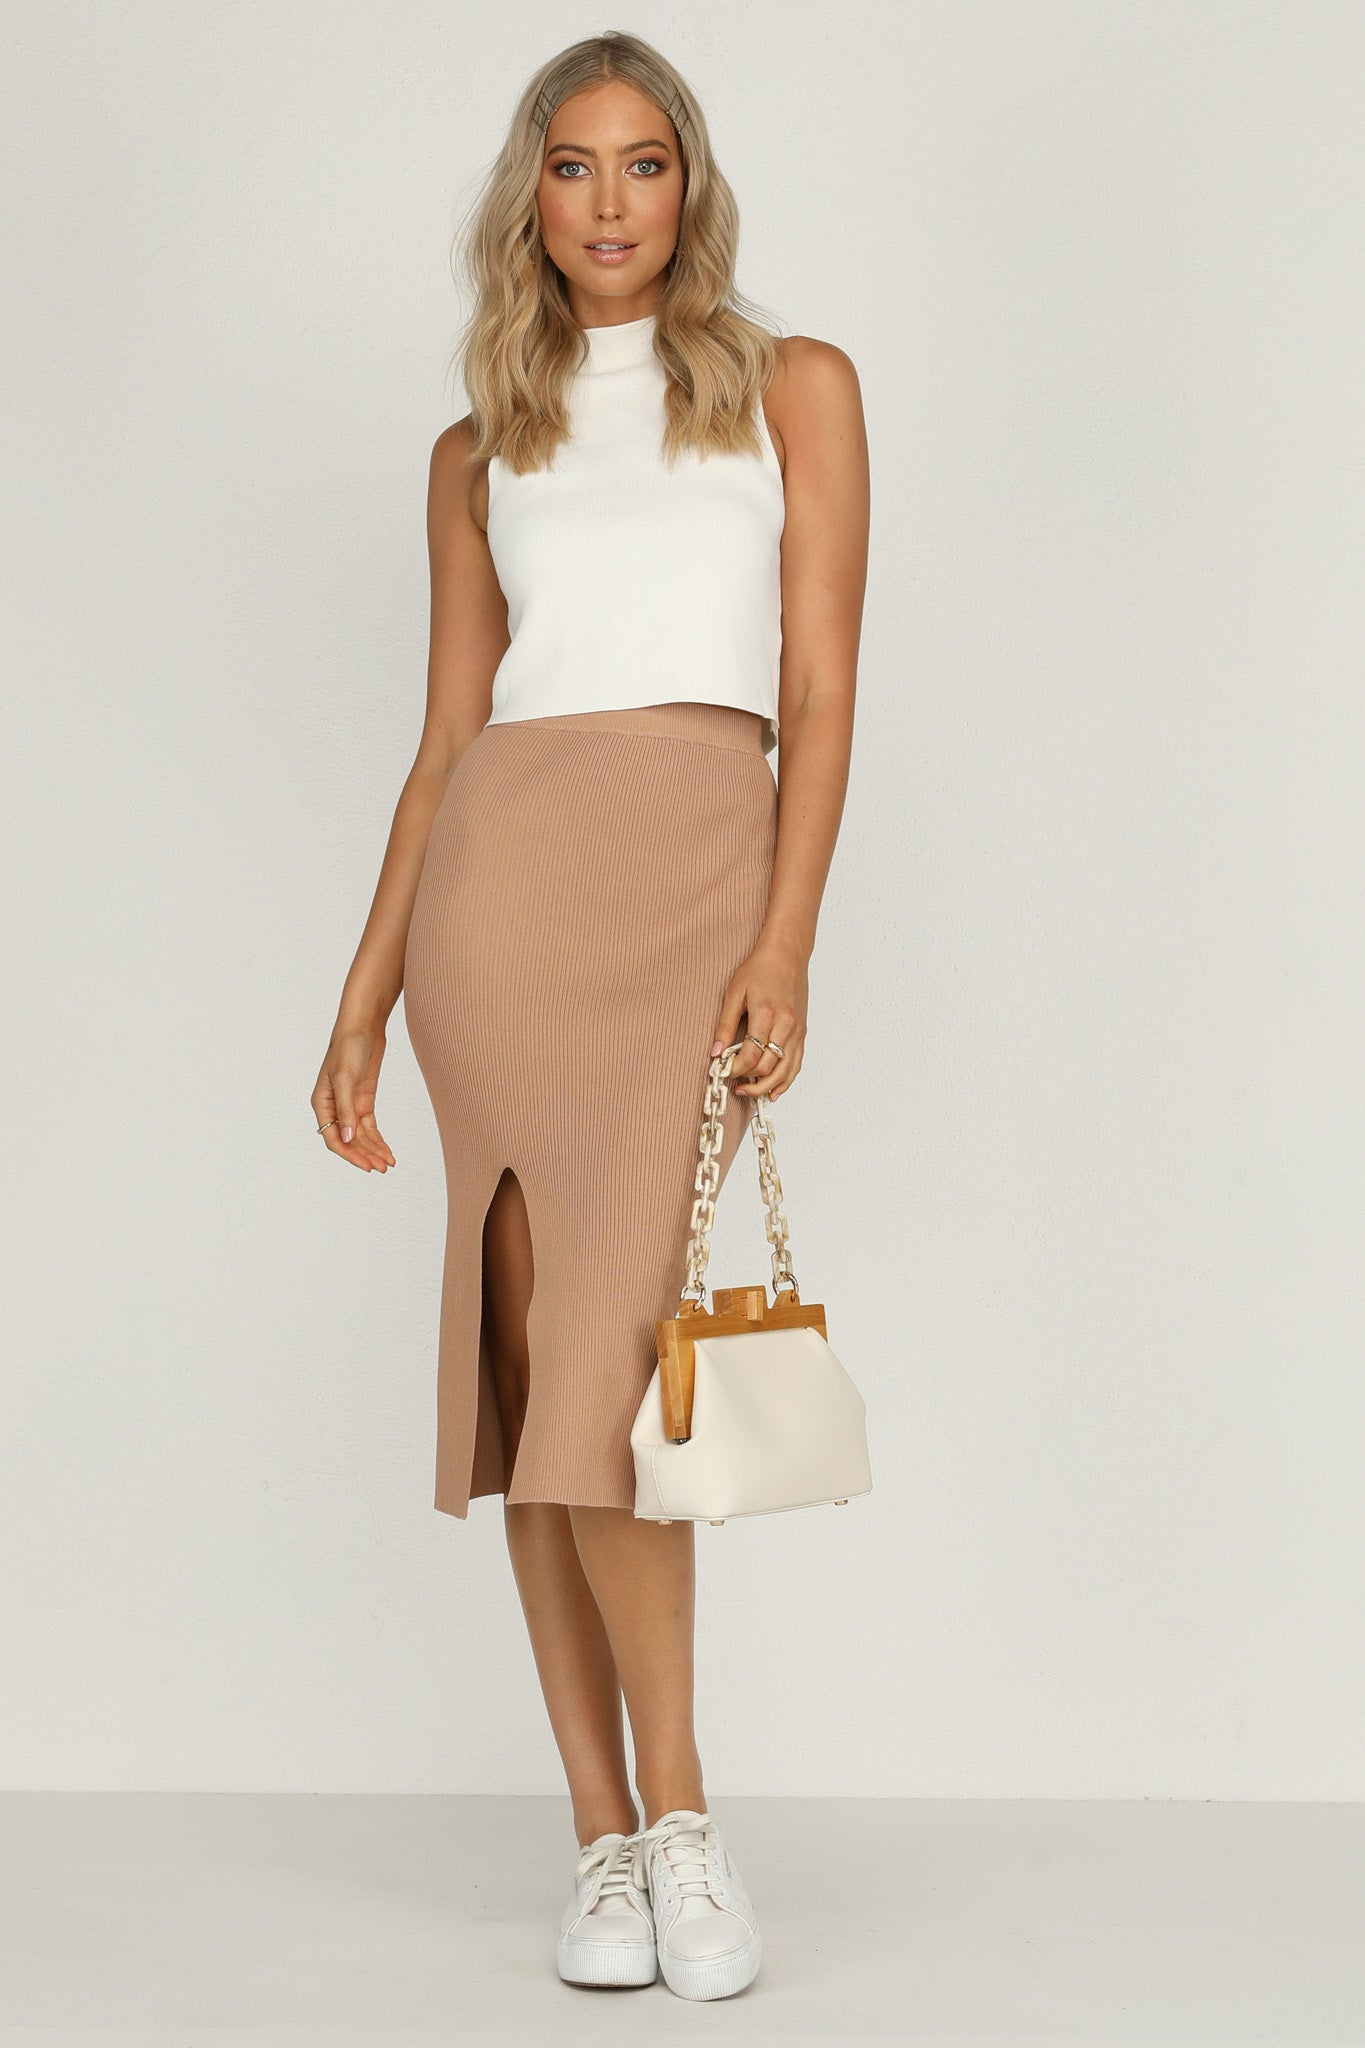 Falling Hard Knit Skirt (Tan)